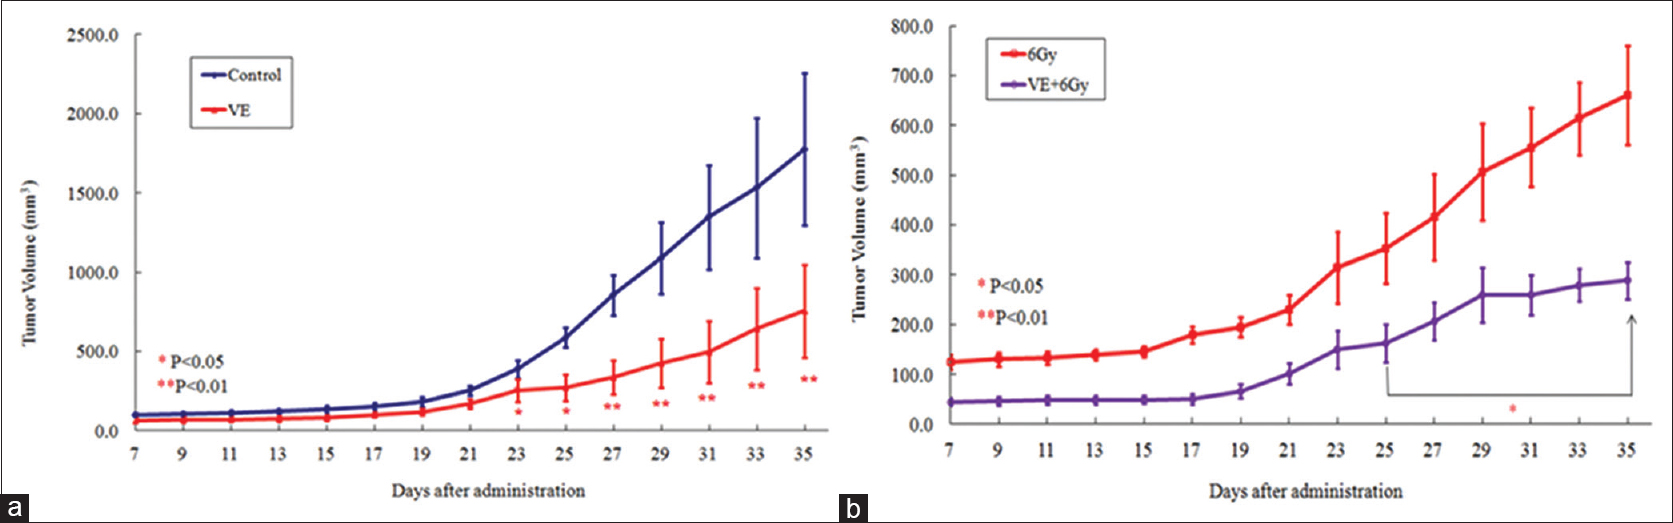 Figure 5: Effects of Vitamin E on tumor growth in unirradiated groups (a) and irradiated groups (b) inoculated with Ehrlich carcinoma cells. Statistically significantly different (*<i>P</i> < 0.05, **<i>P</i> < 0.01) from the control group